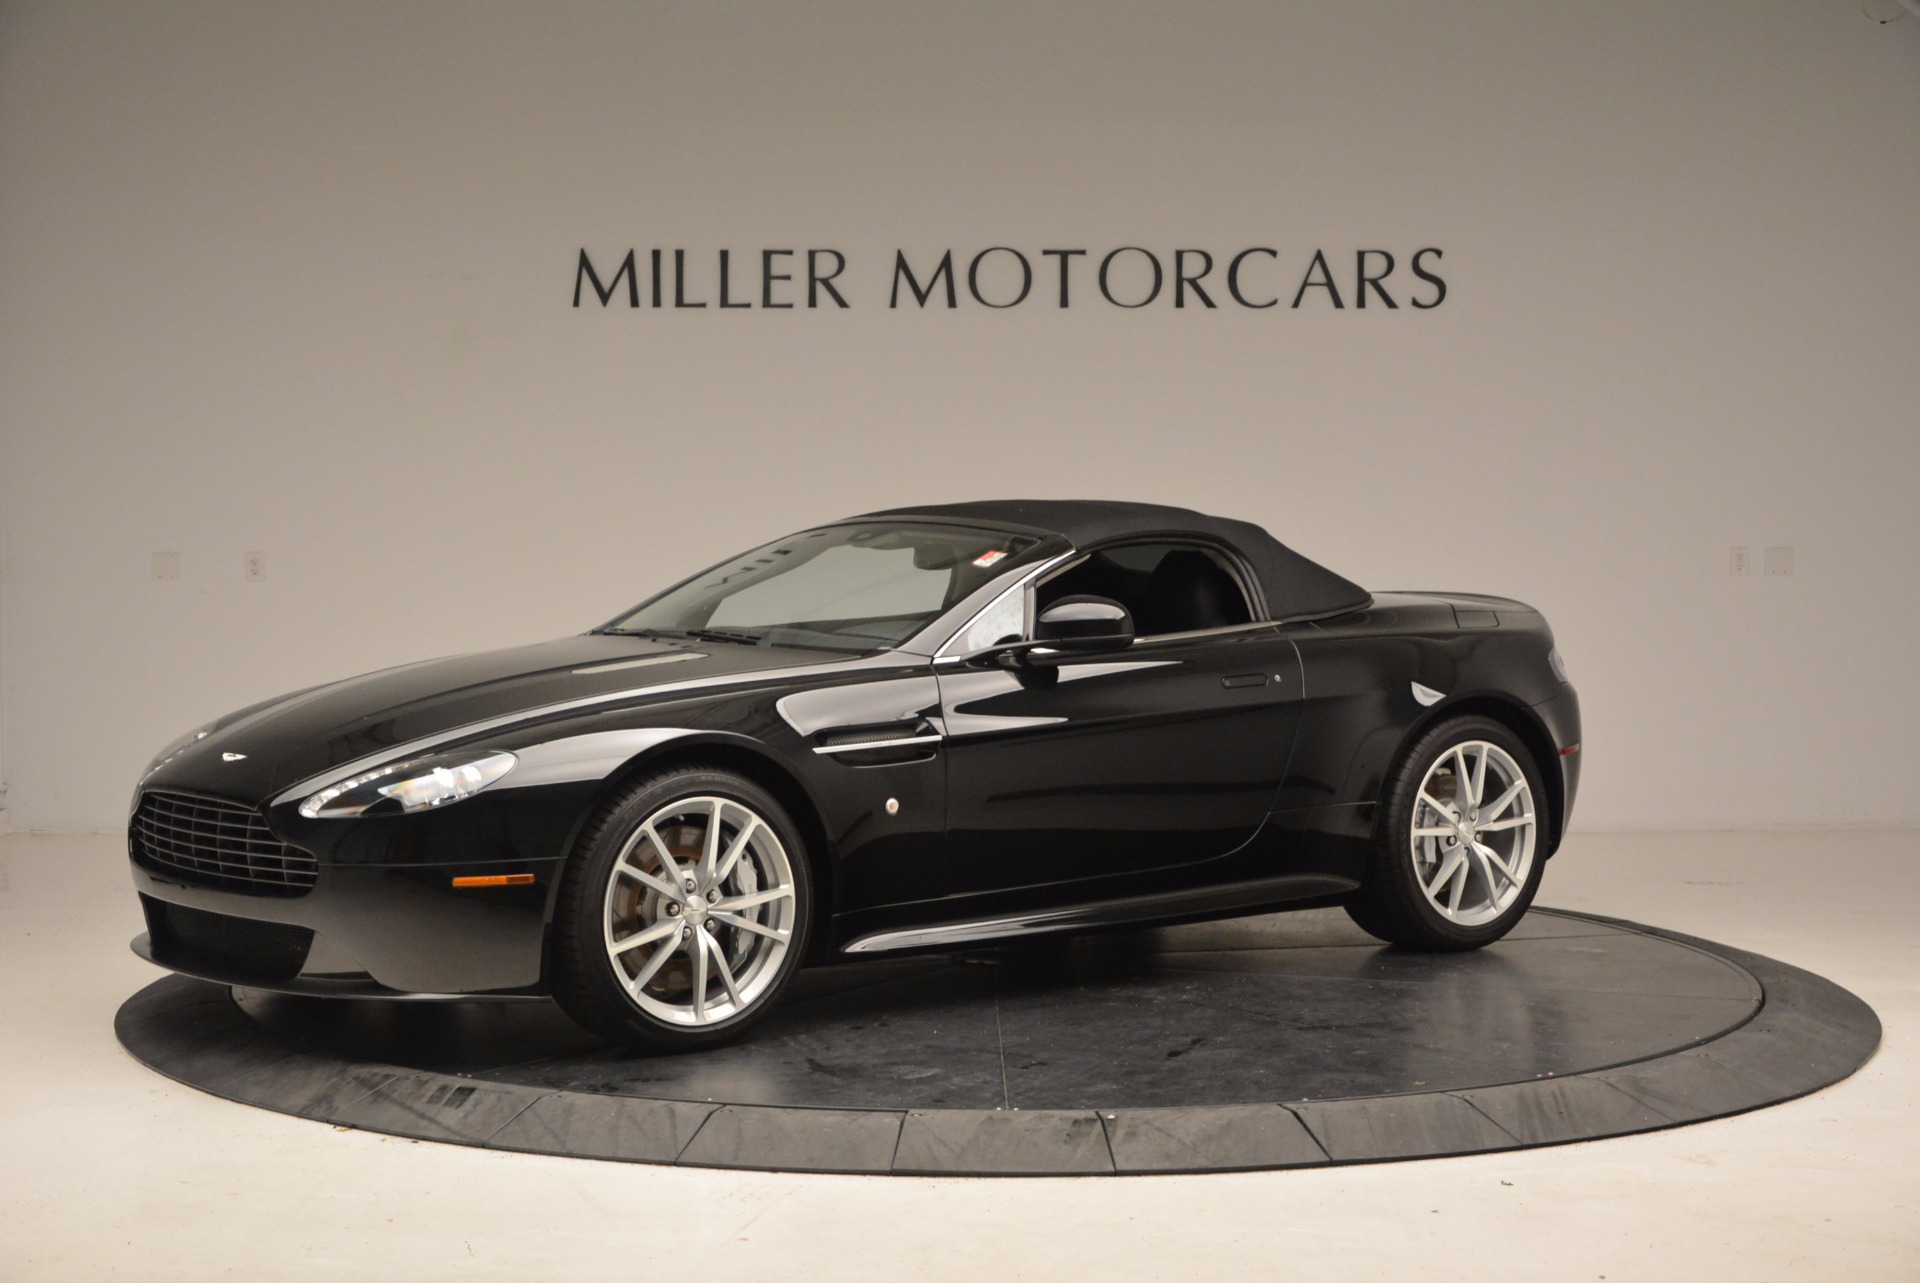 New 2016 Aston Martin V8 Vantage Roadster For Sale In Westport, CT 1546_p14